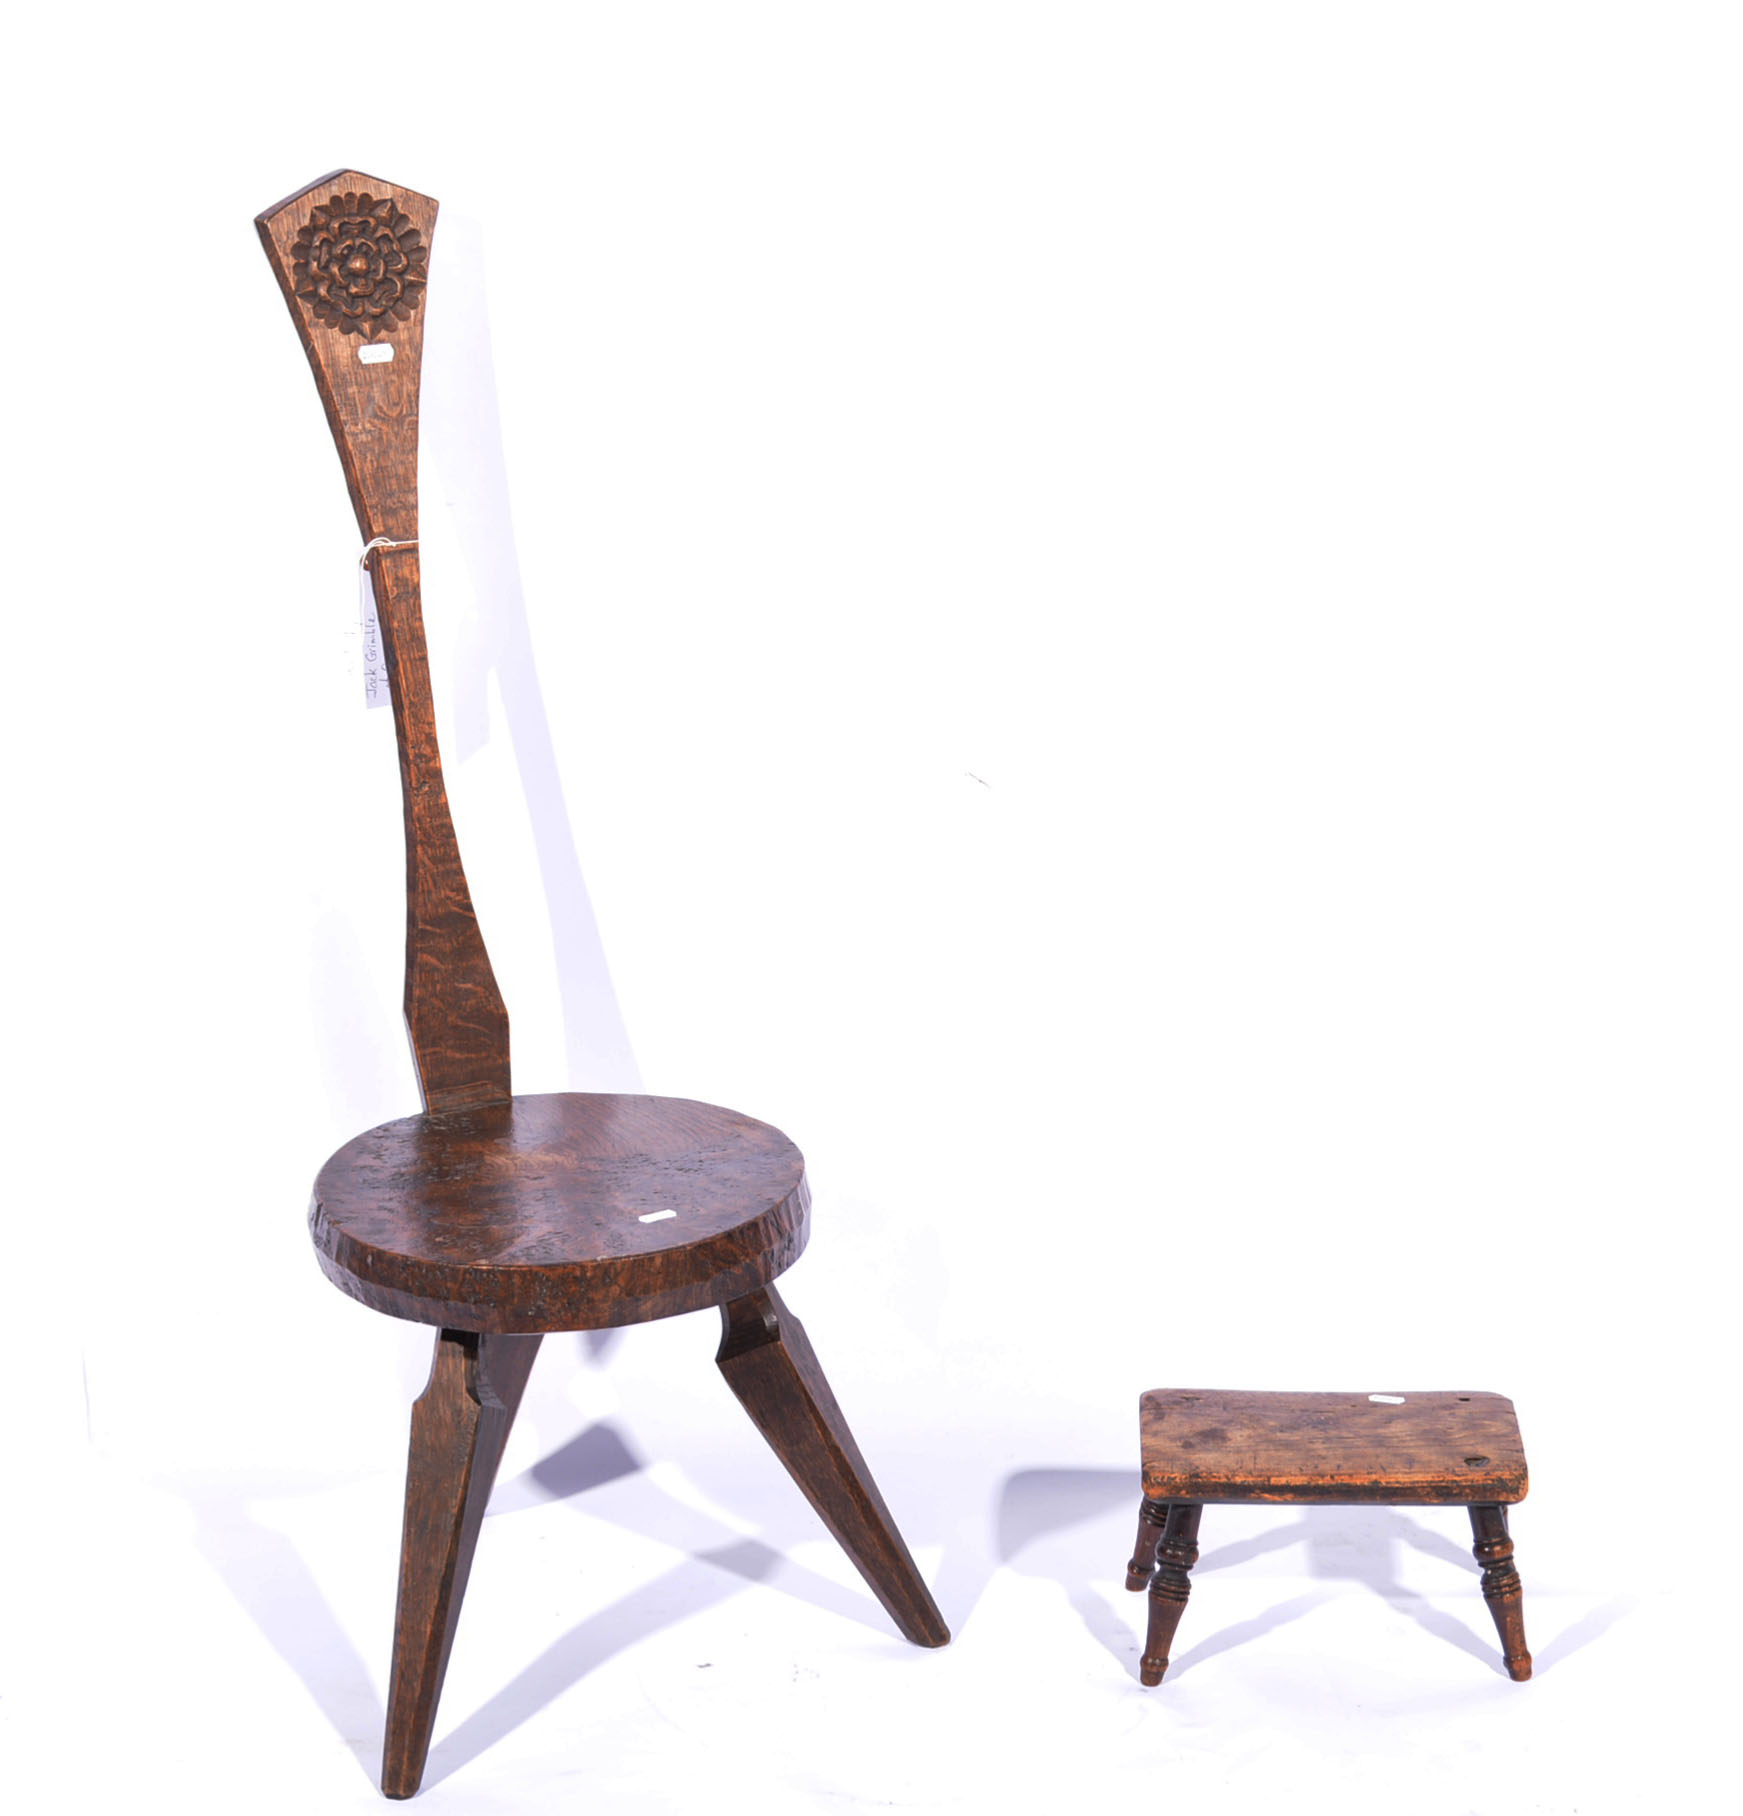 Carved oak spinning chair, narrow back, circular seat